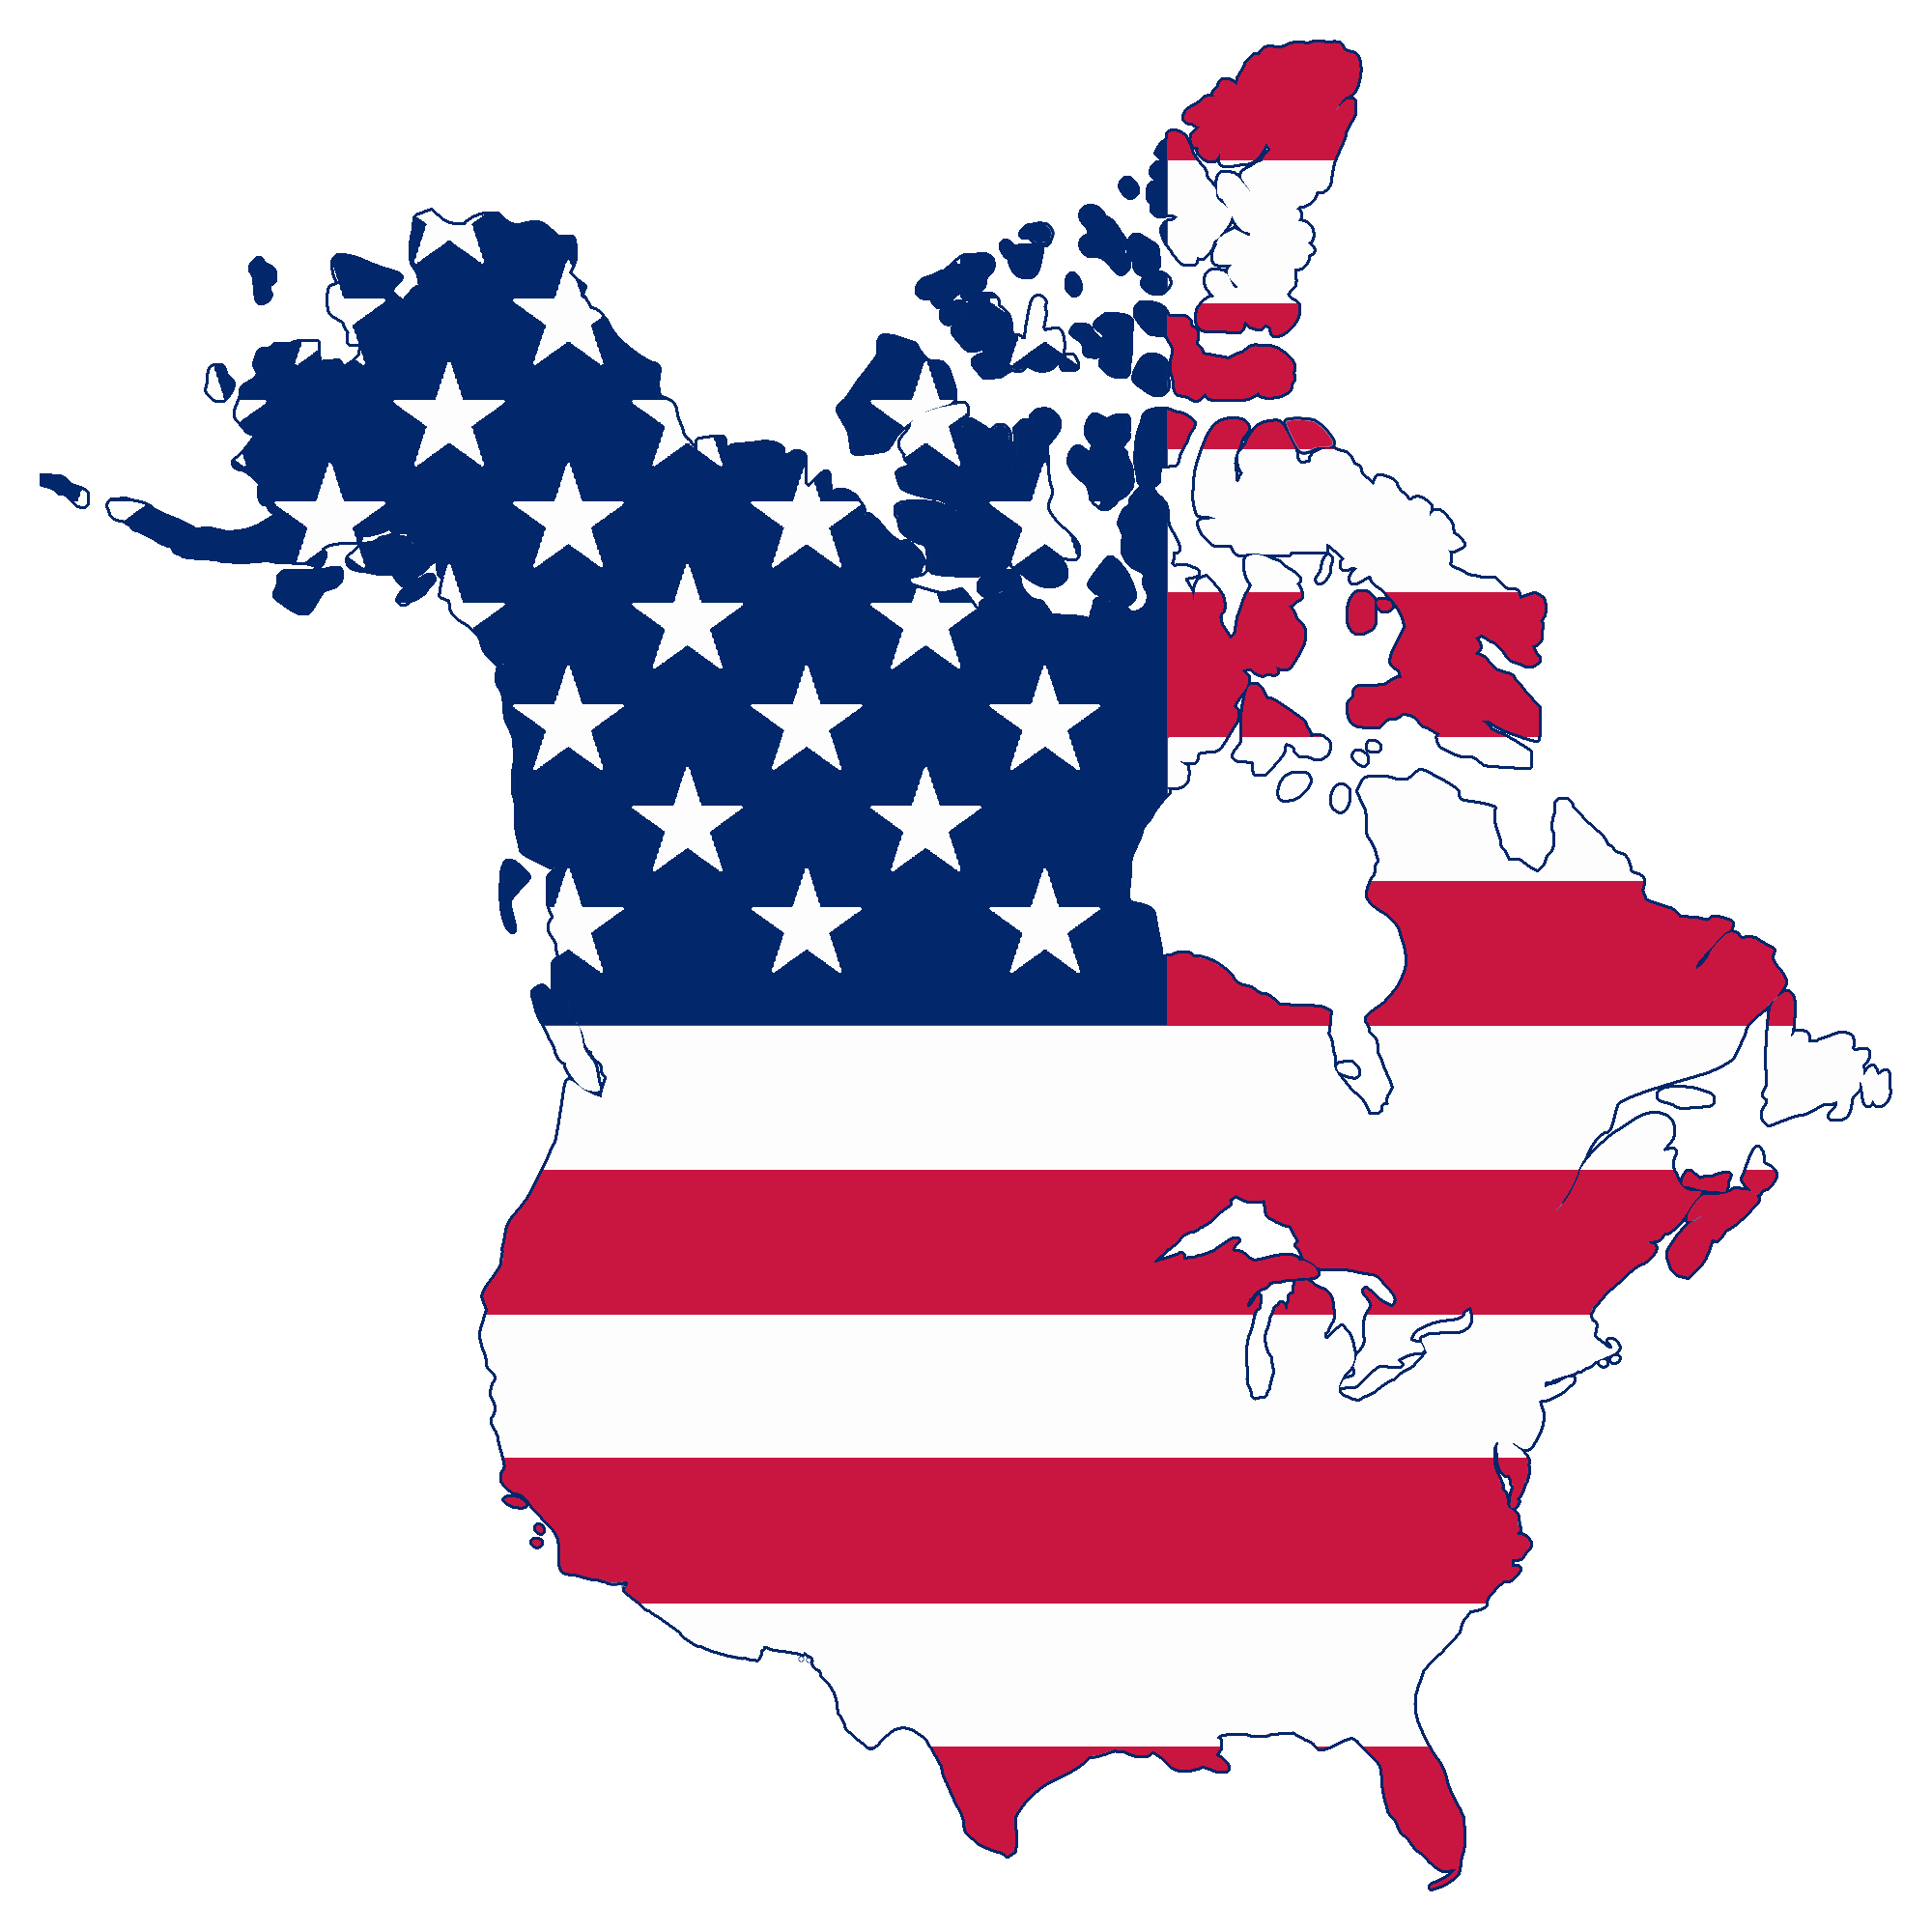 American Flag Png - File:Flag map of Canada and United States (American Flag).png